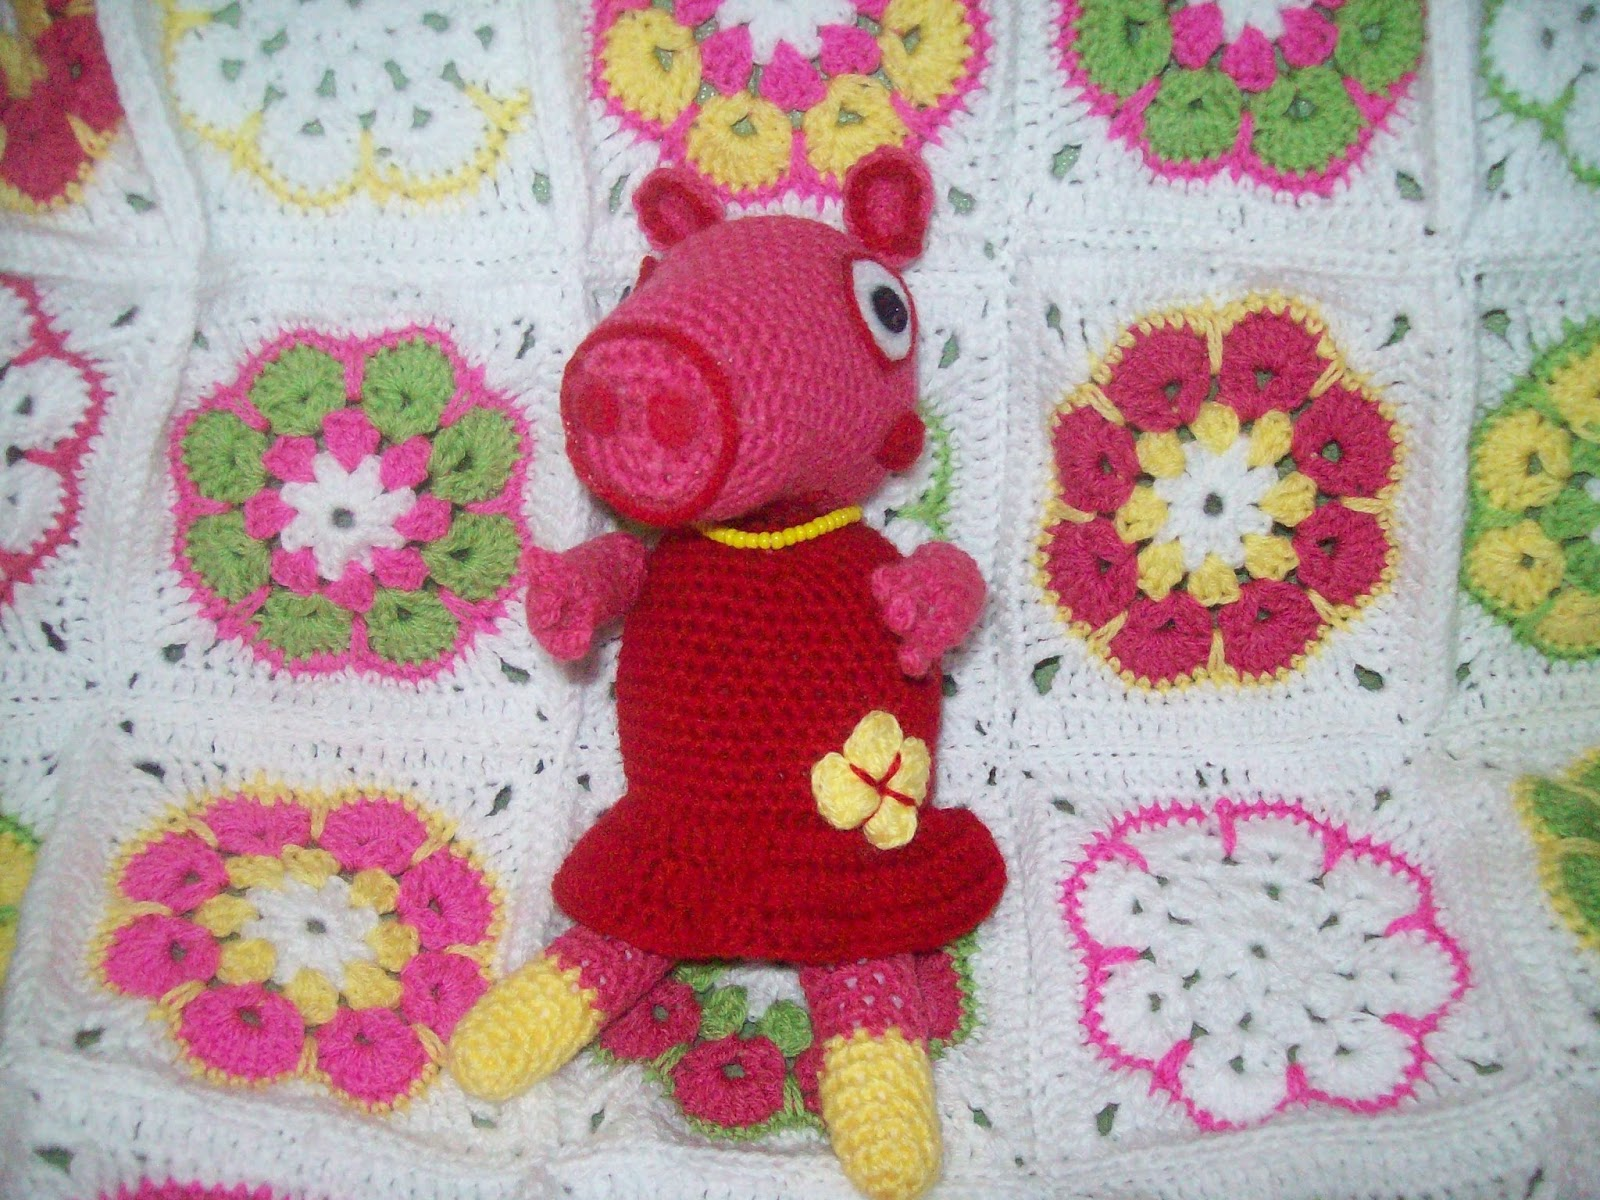 Peppa Pig Knitting Patterns : Free Crochet Patterns By Cats-Rockin-Crochet